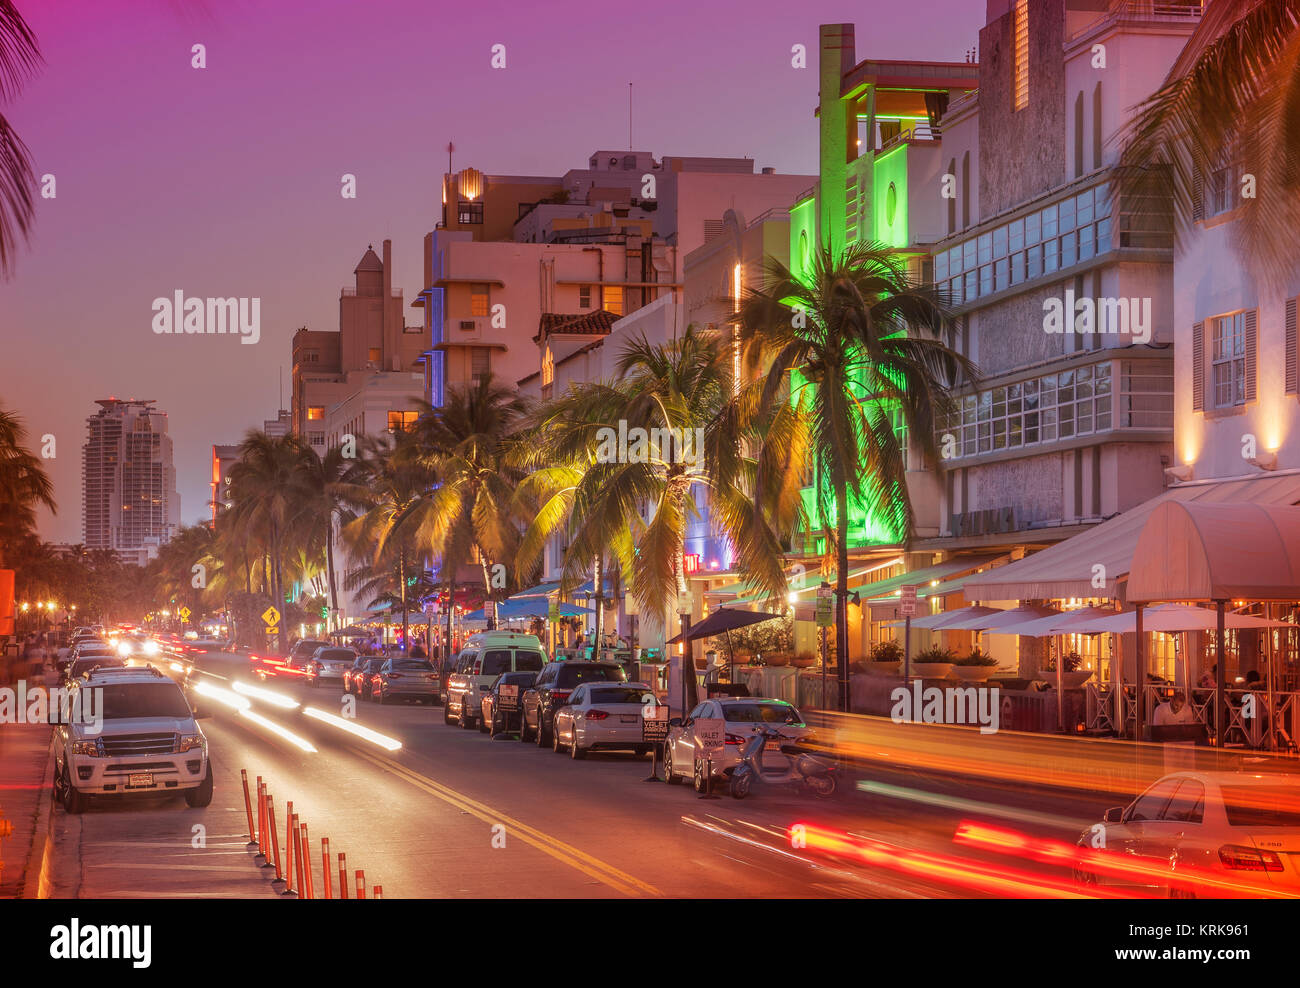 Cars driving in street at night, Miami Beach, Florida, United States - Stock Image